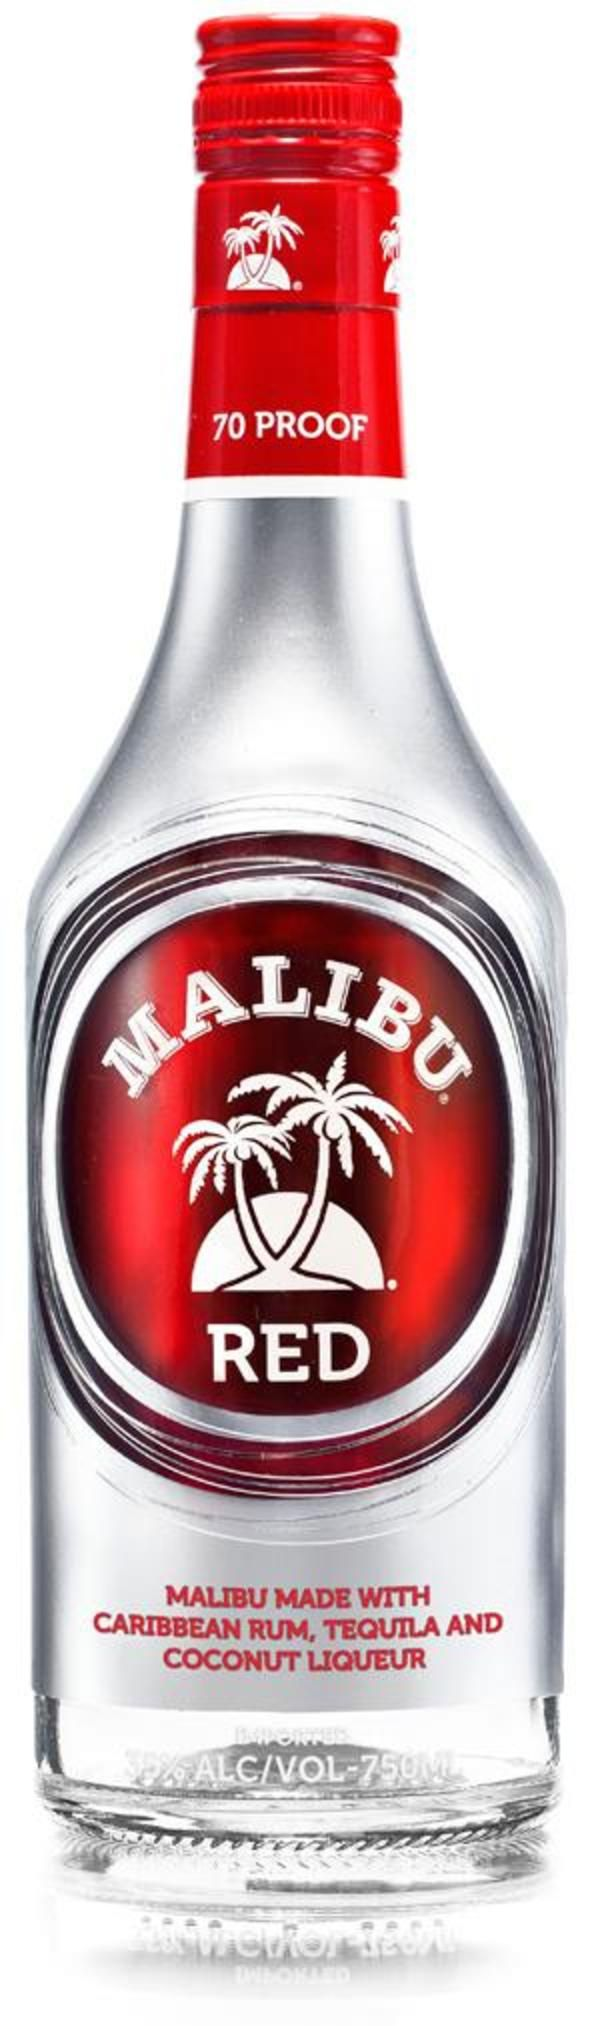 Try these cocktail recipes, using Malibu Red, that will make you feel refreshed and relaxed even if you aren't on vacation.